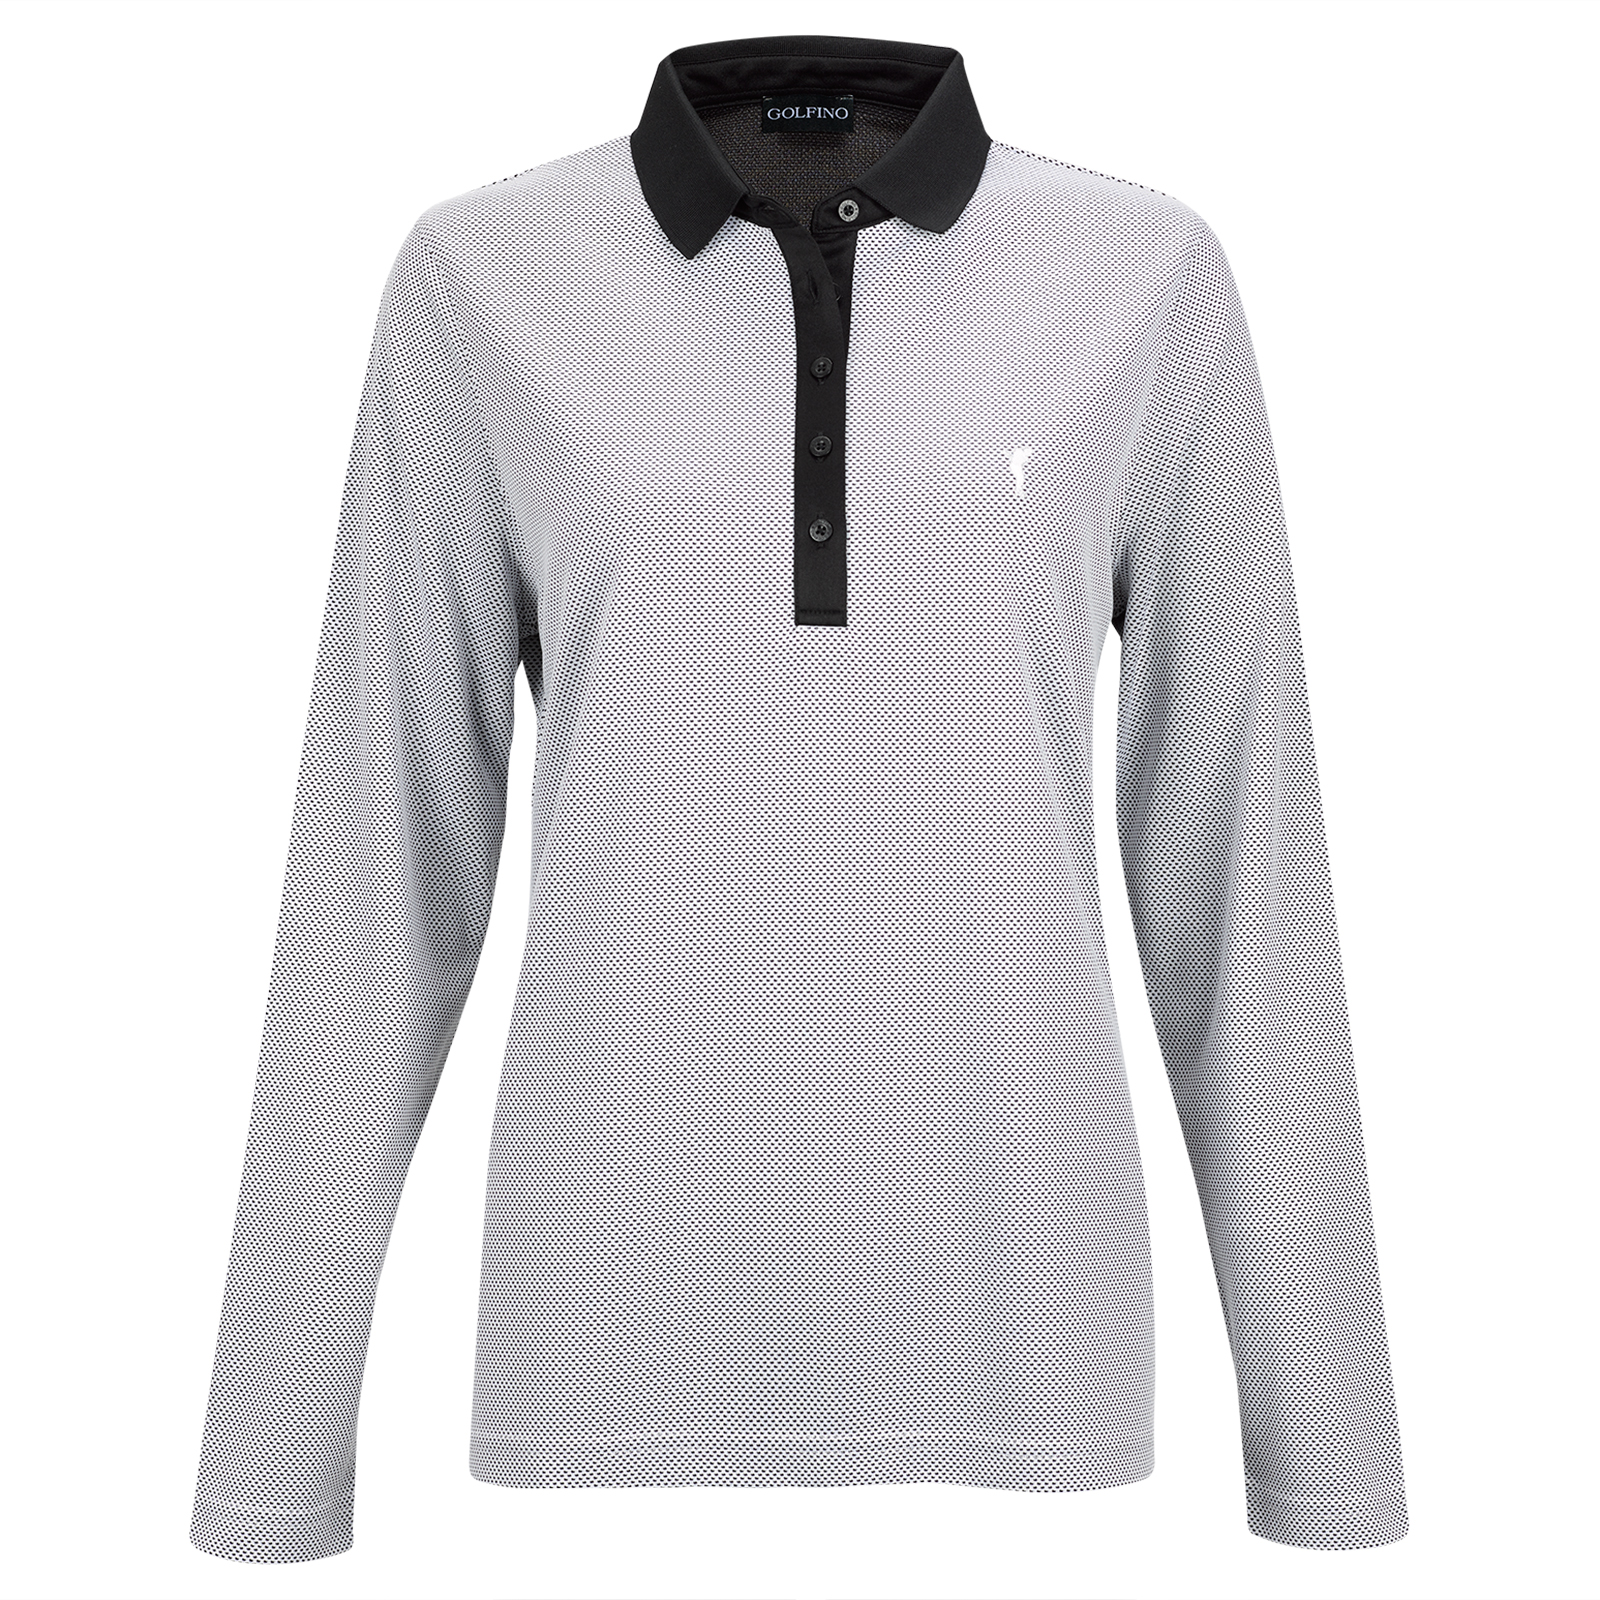 Techno Bubble Jacquard Damen Langarm Funktions-Golfpolo Quick Dry